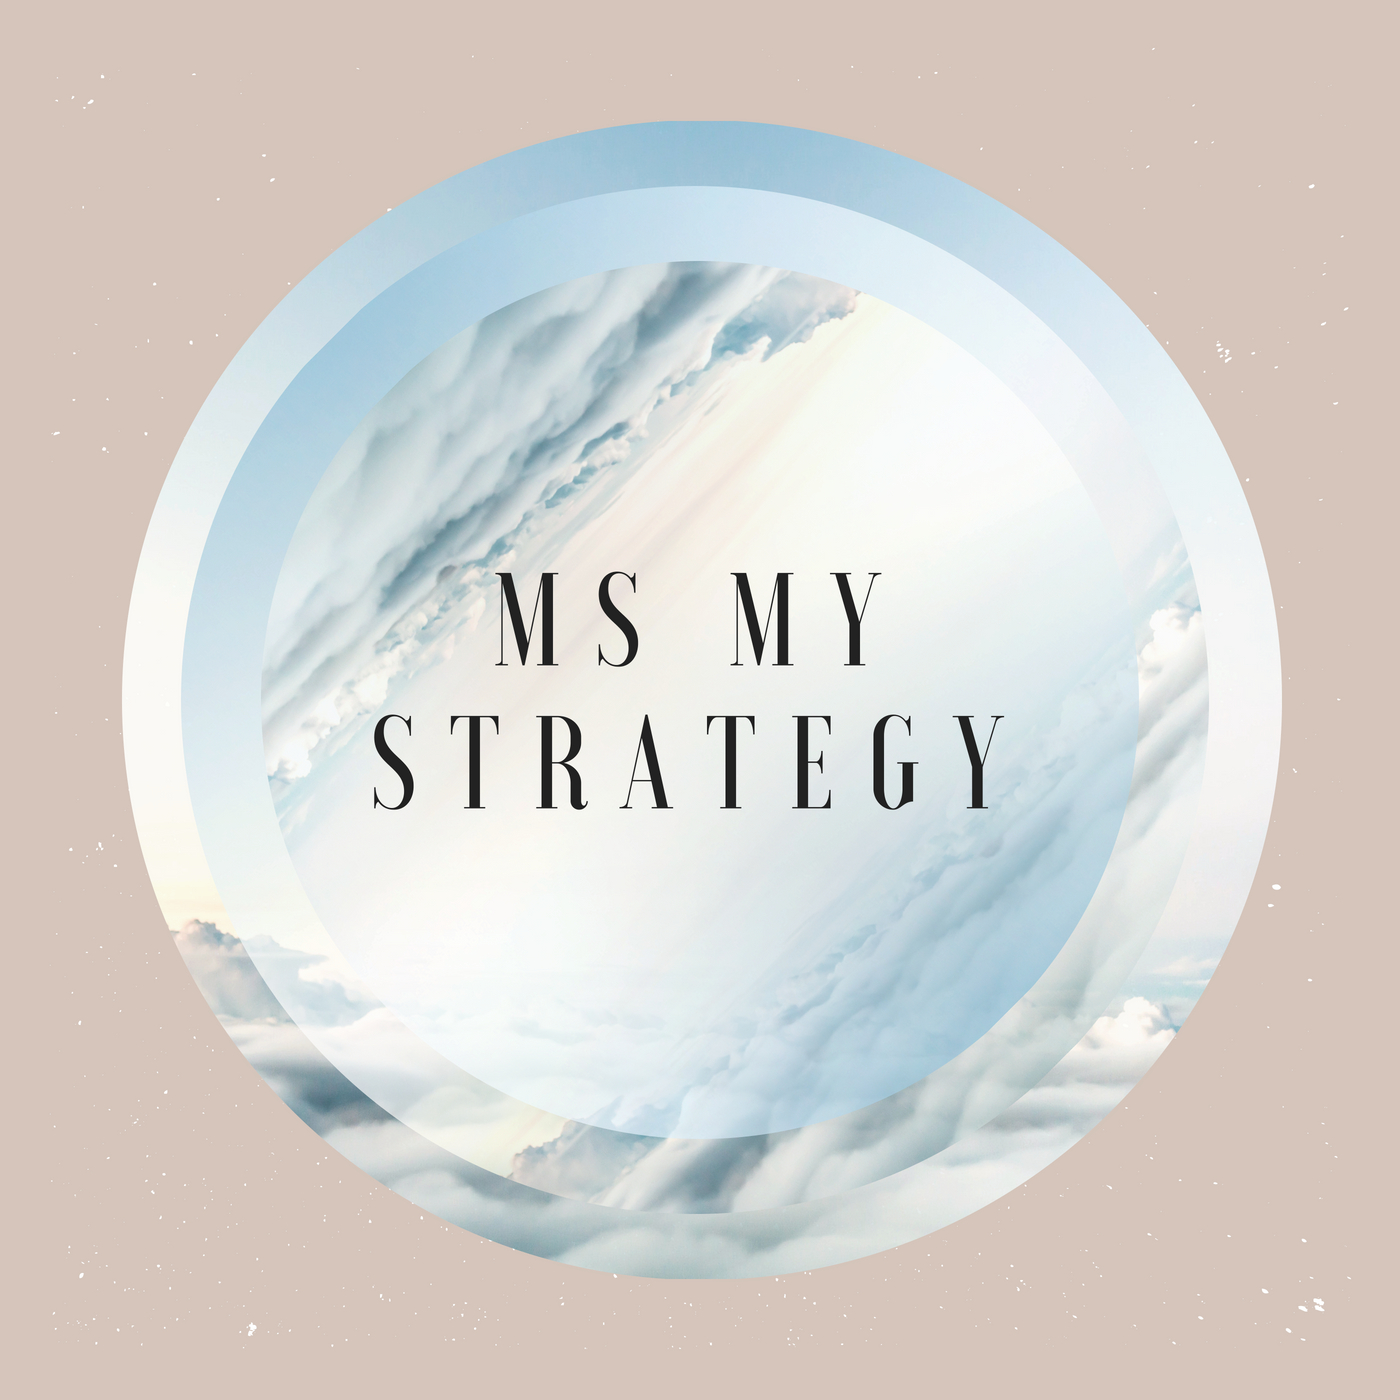 MS MY STRATEGY